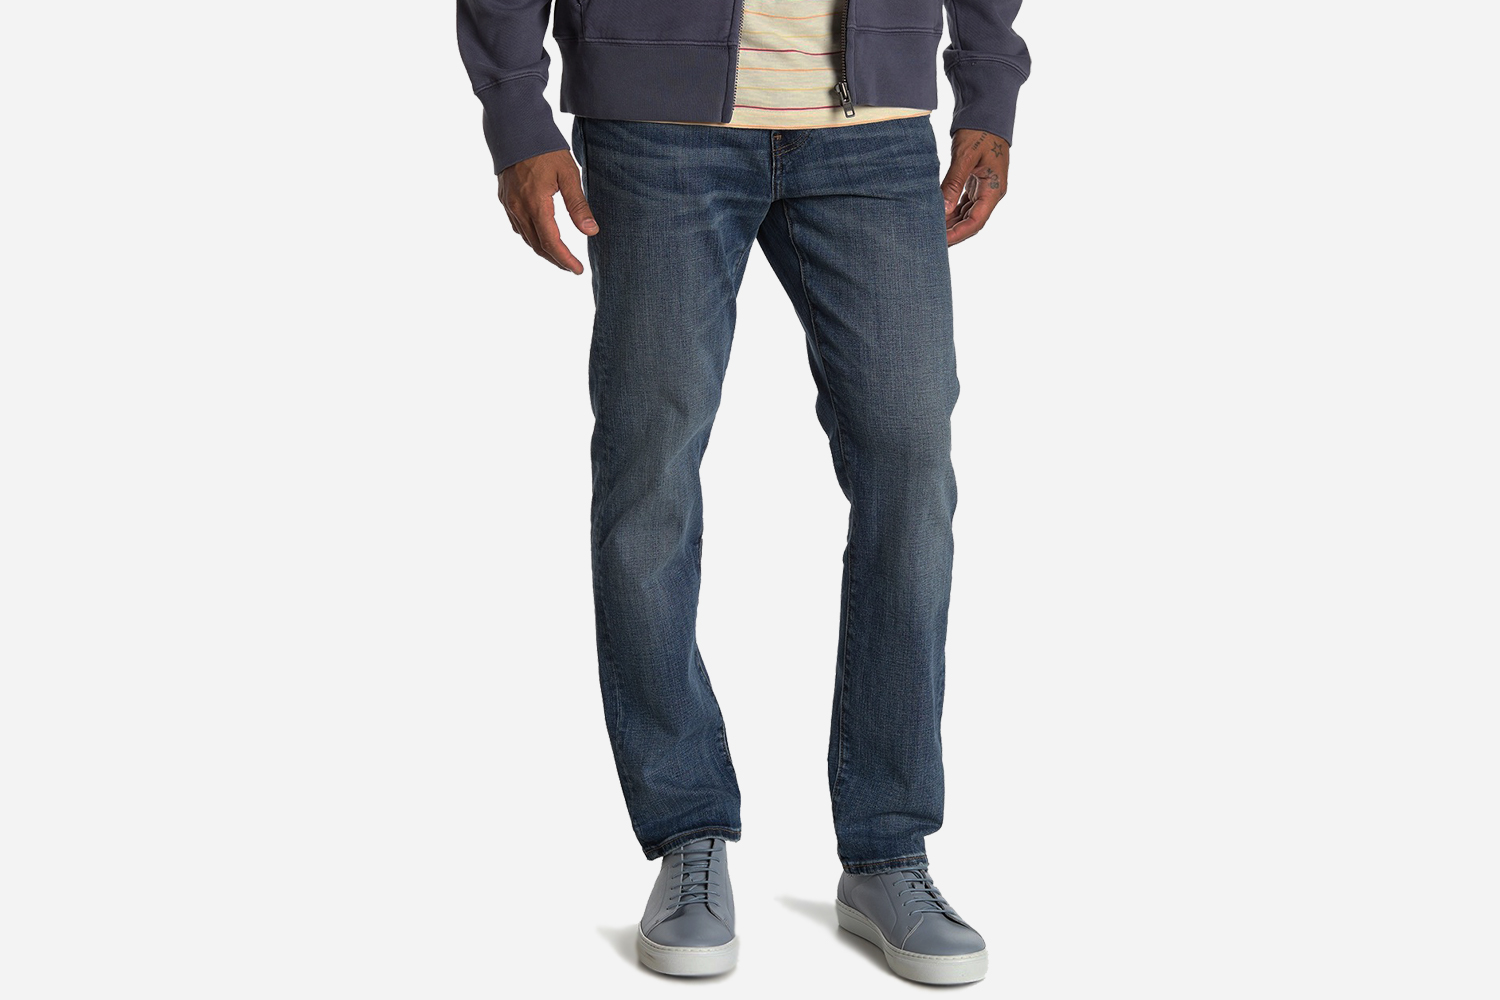 Madewell Men's Slim Fit Jeans in Erie Wash